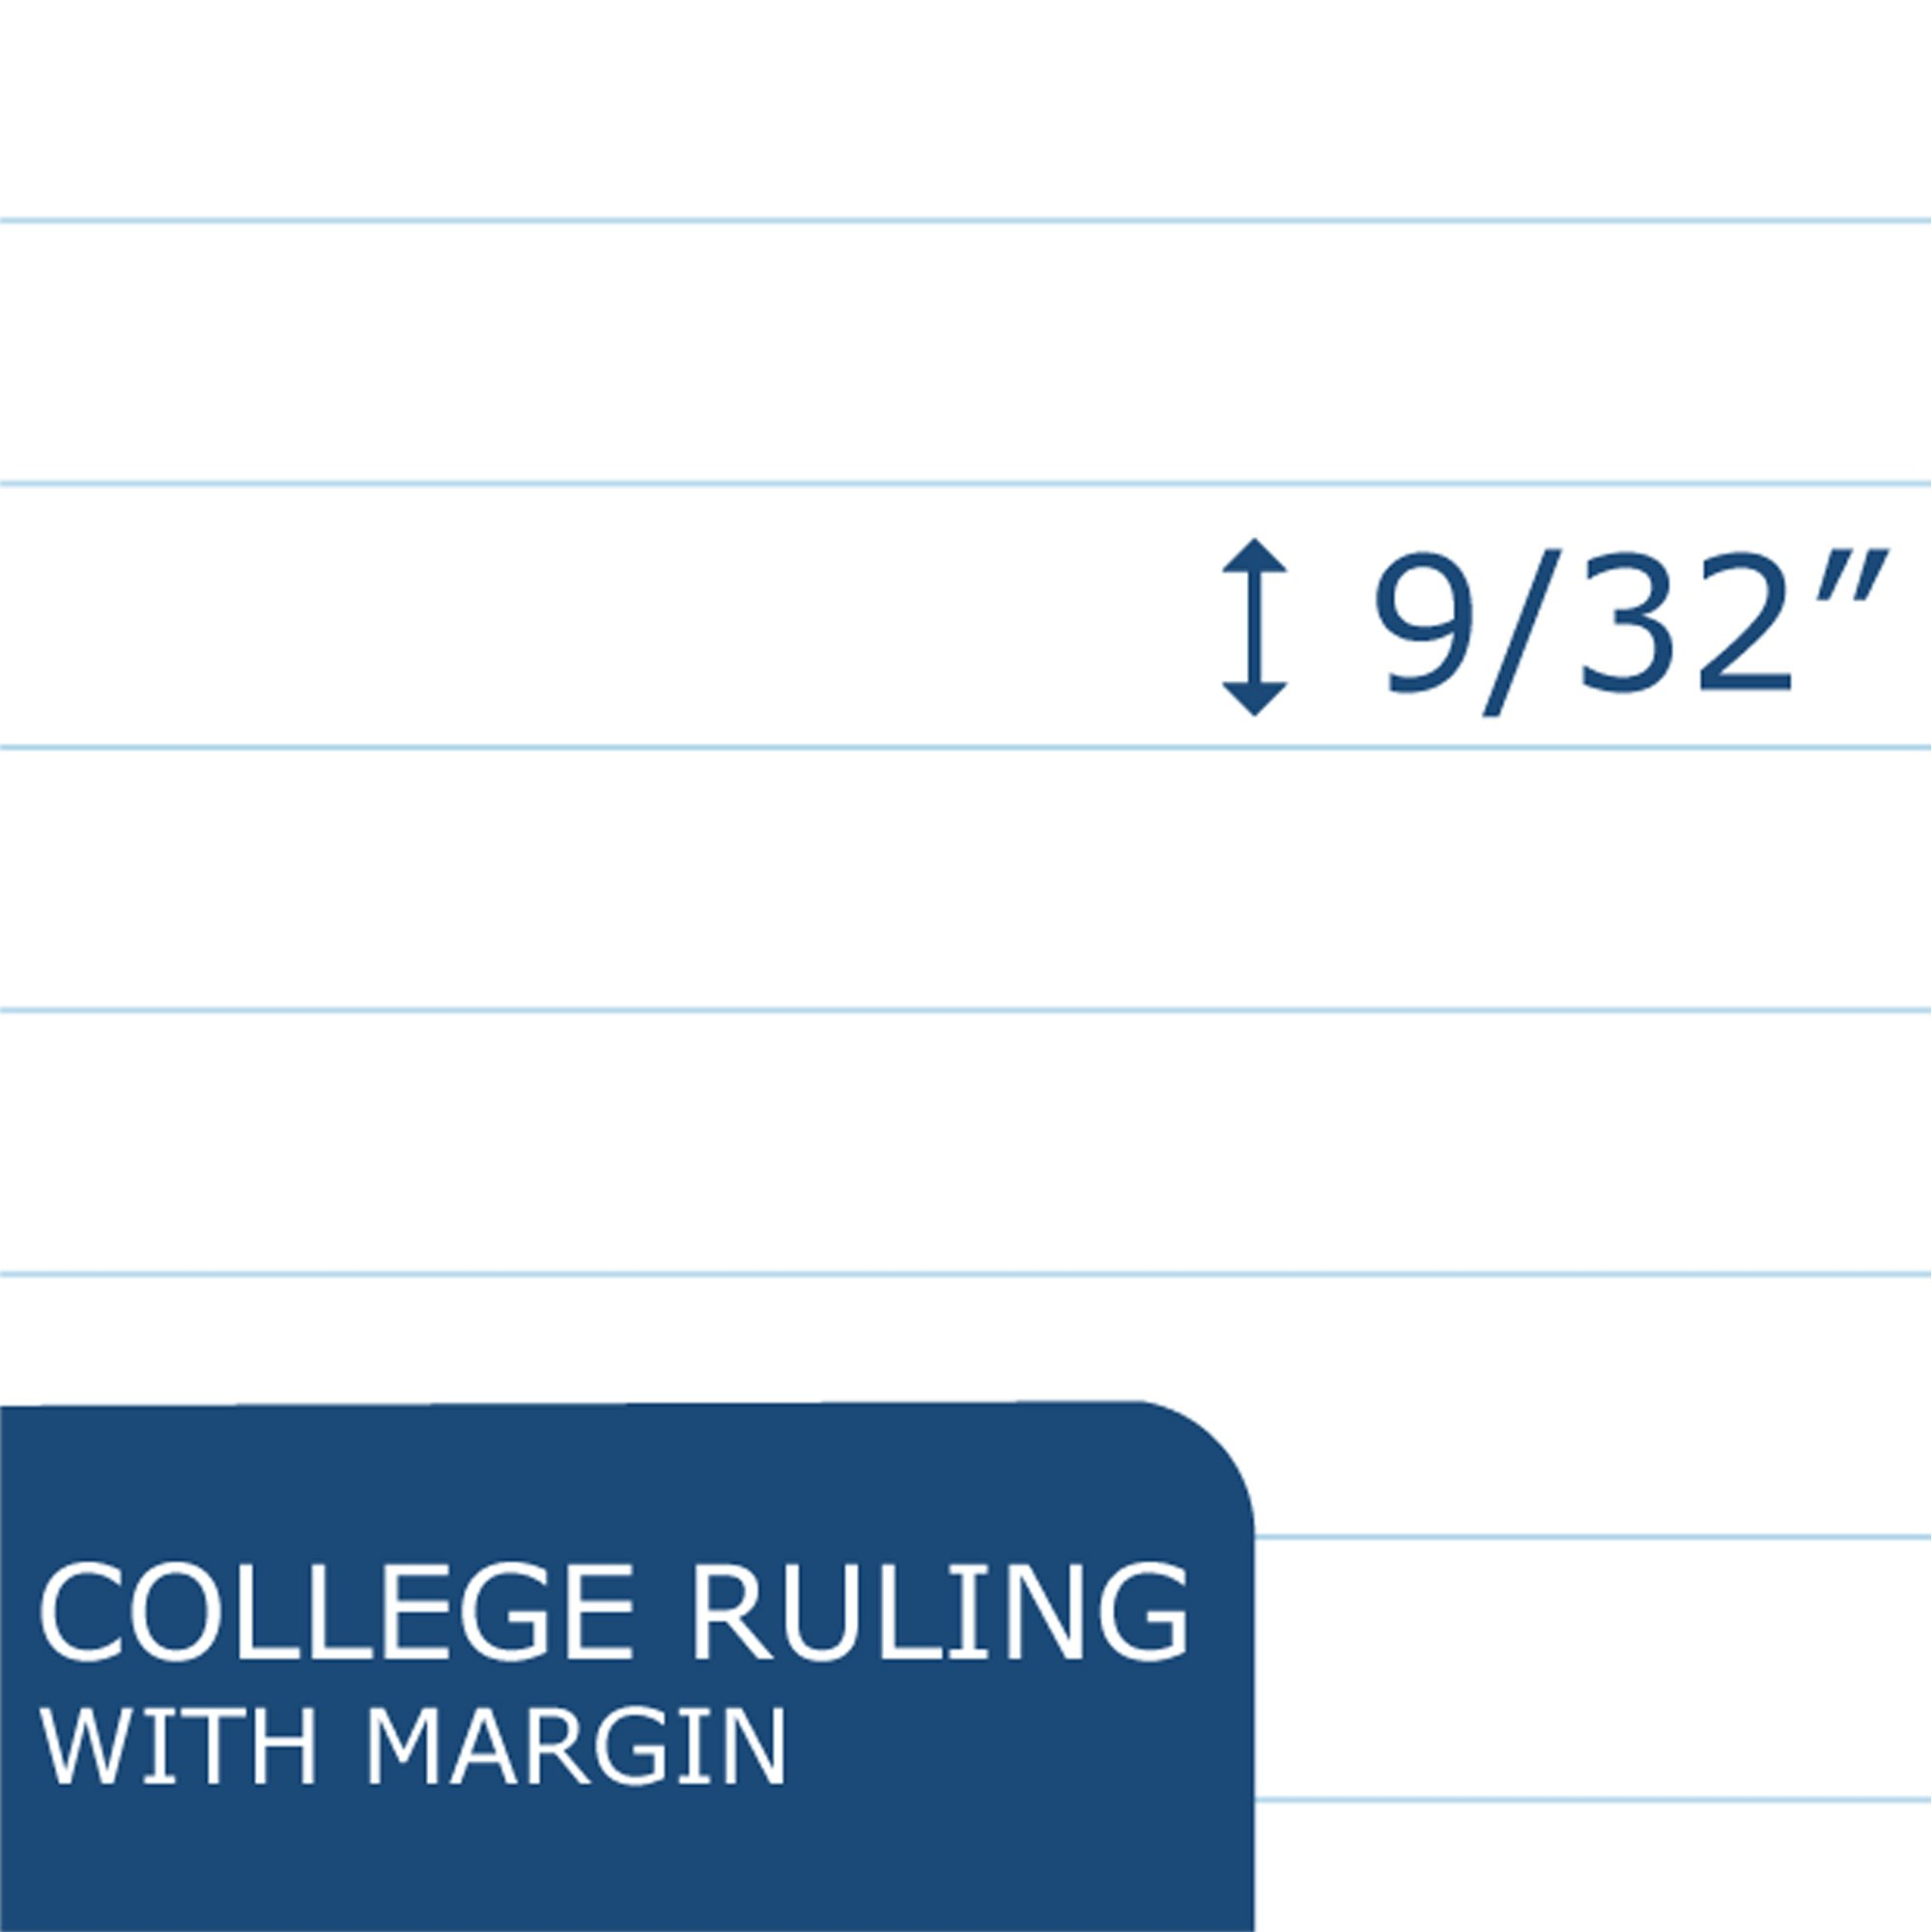 Roaring Spring Premium Composition Book, 10 1/4'' x 7 7/8'', College Ruled, 80 sheets by Roaring Spring (Image #3)